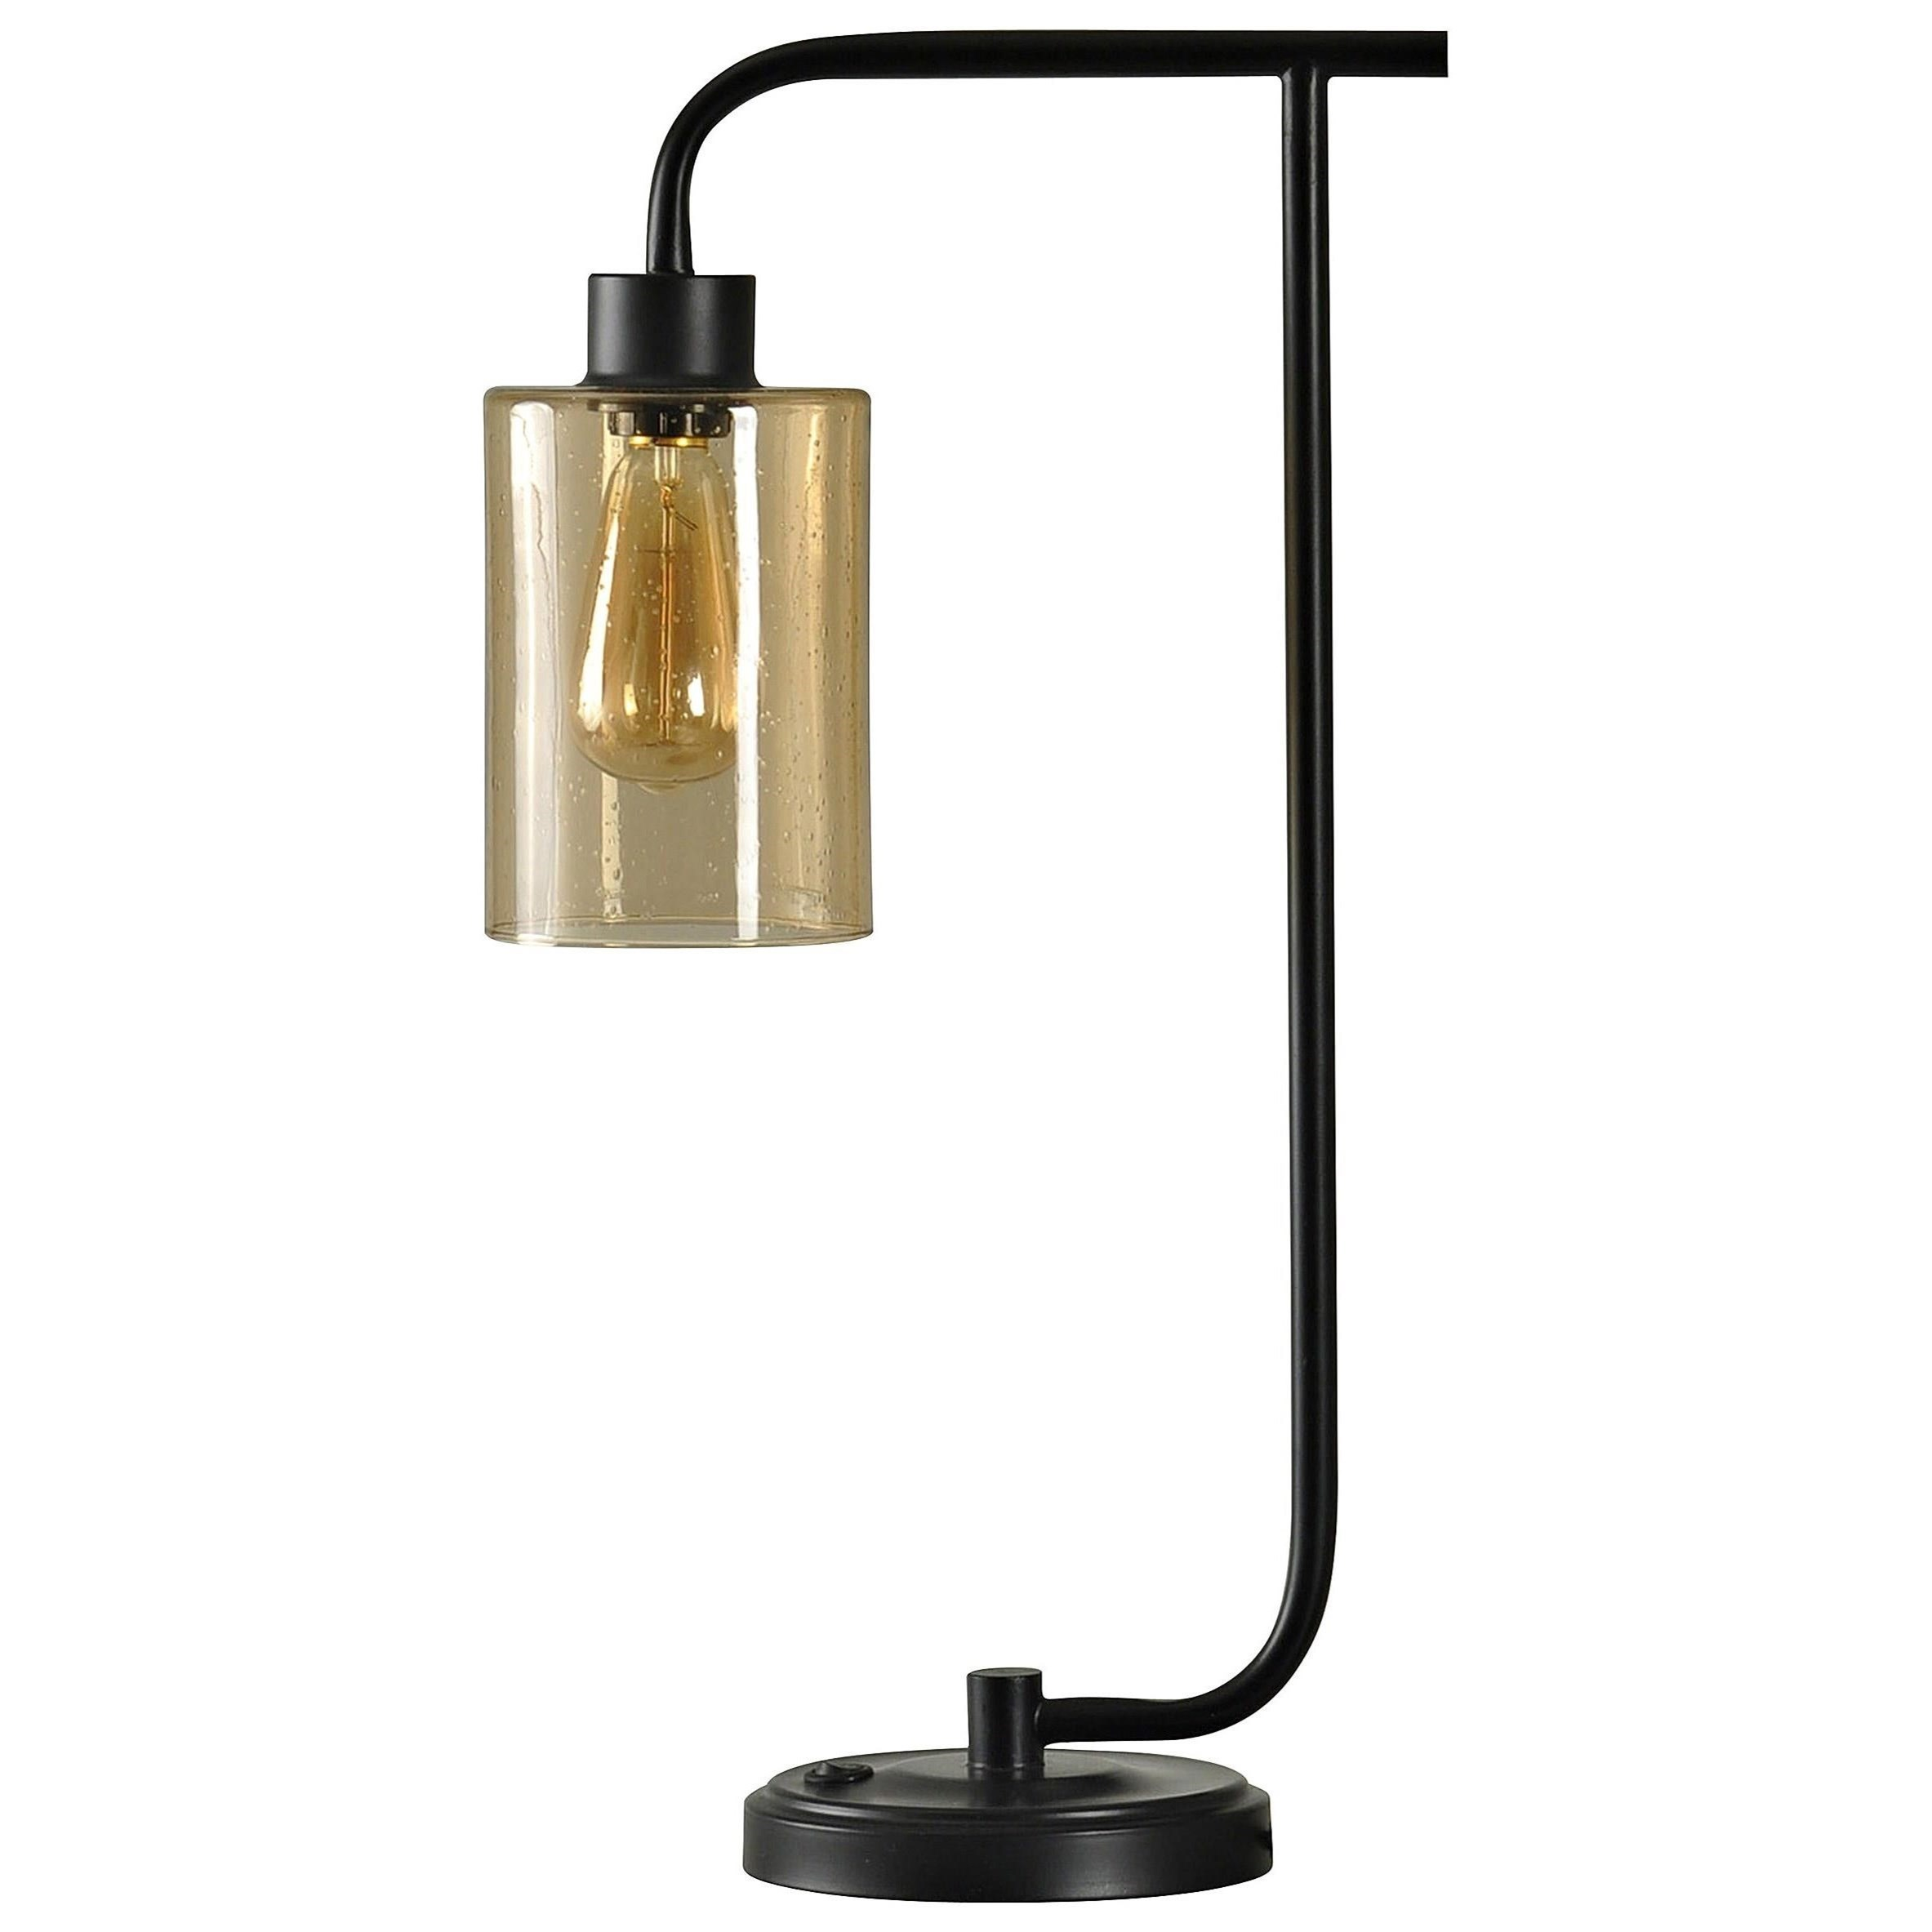 Awesome StyleCraft LampsGlass And Metal Desk Lamp